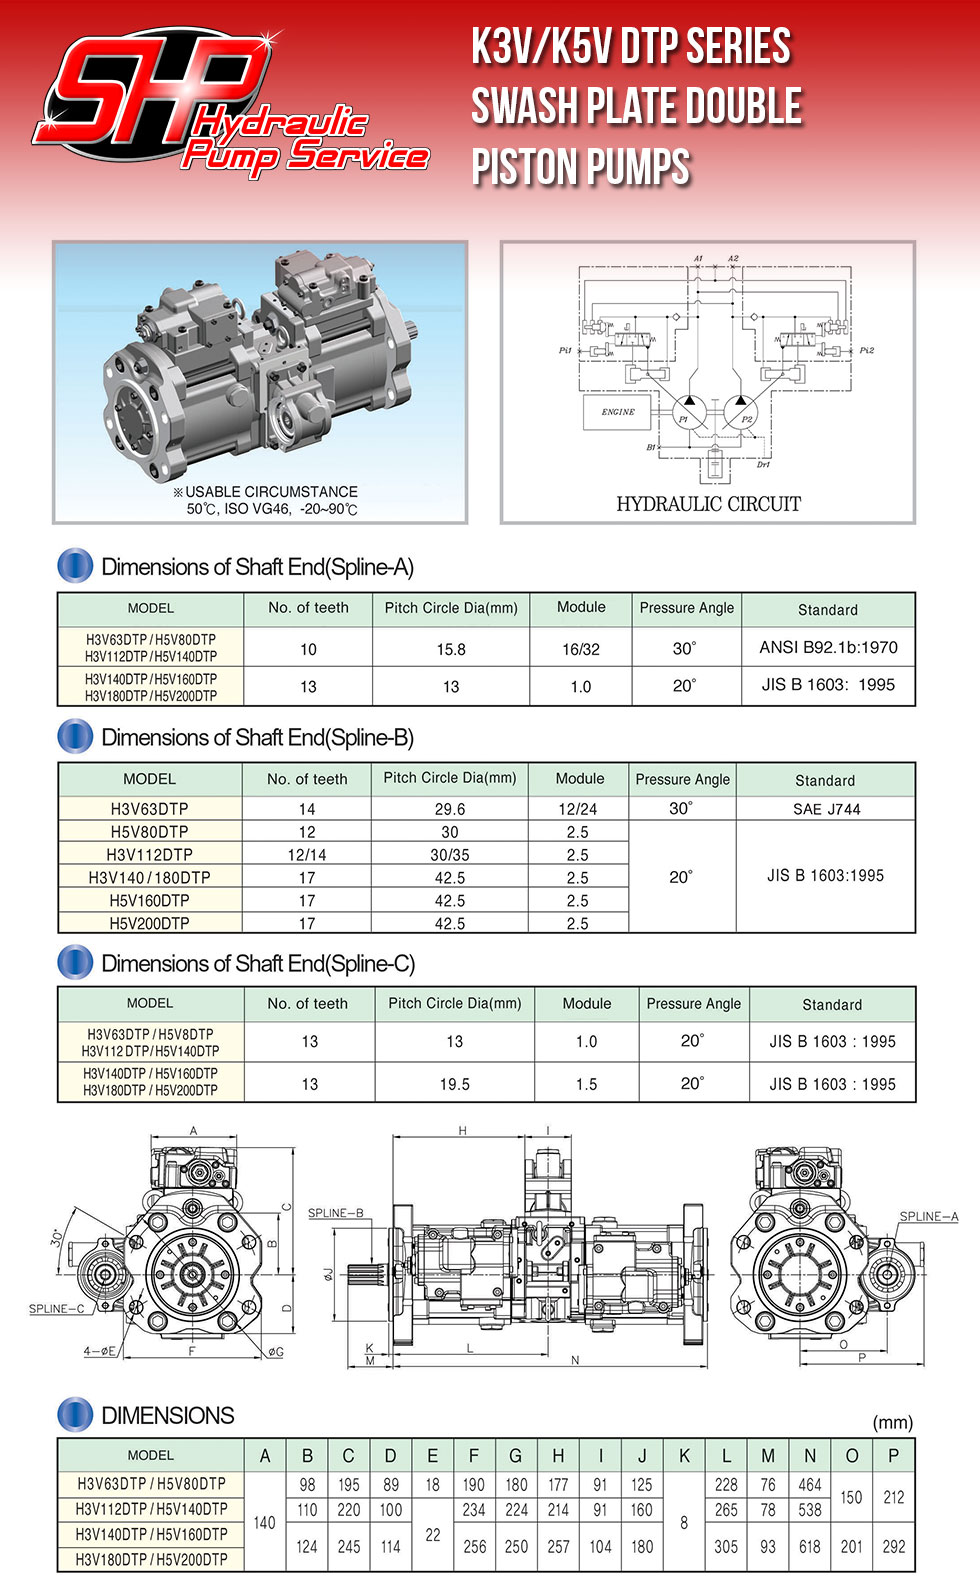 K3V/K5V DTP Series Swash Plate Double Piston Pumps